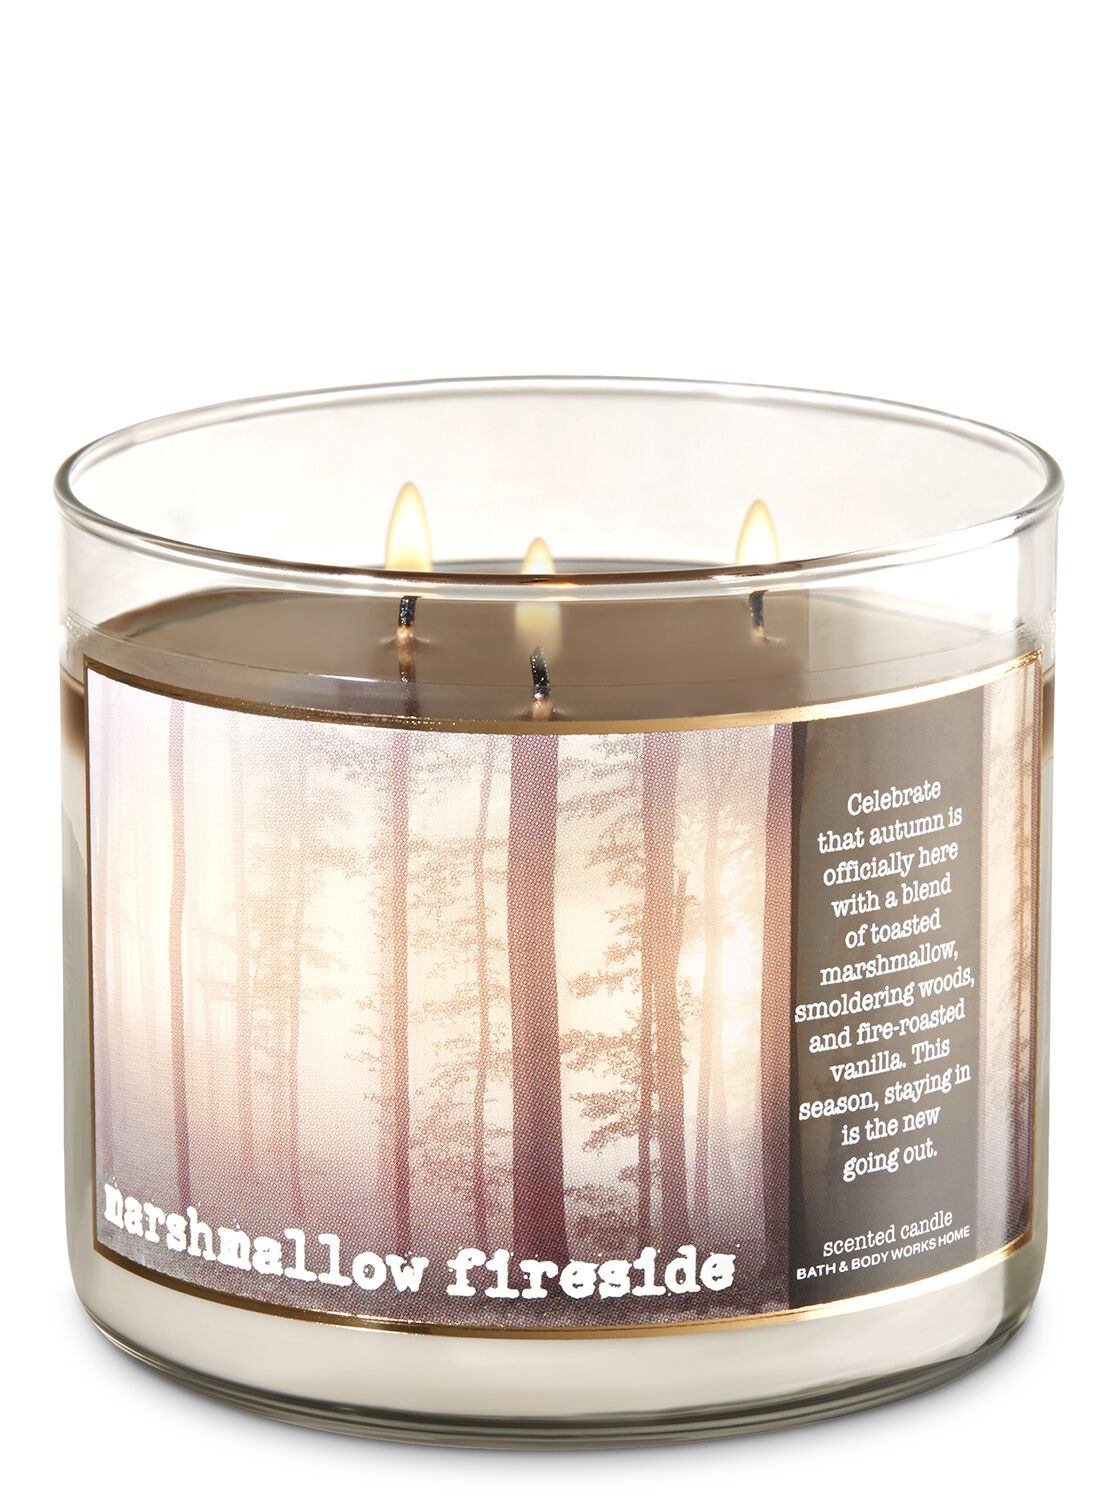 Bath Pictures marshmallow fireside 3-wick candle | bath & body works